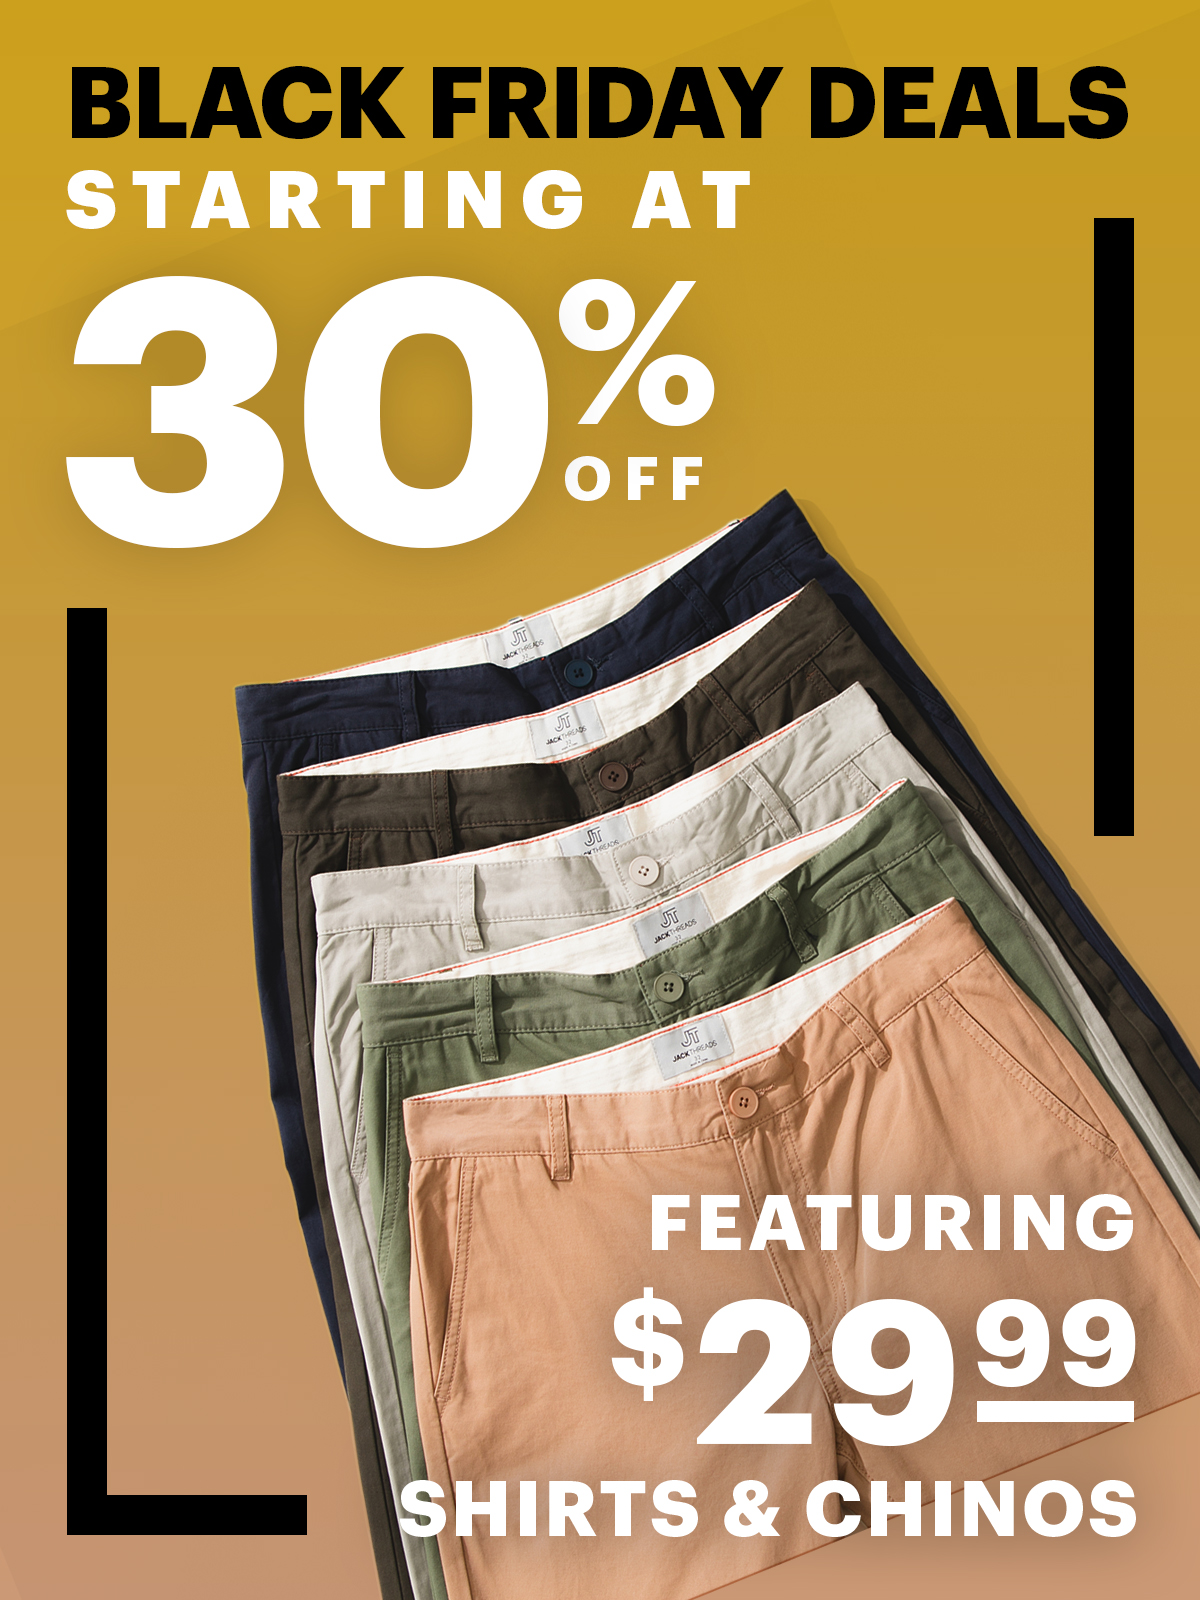 Black Friday: $29.99 Chinos And Dress Shirts